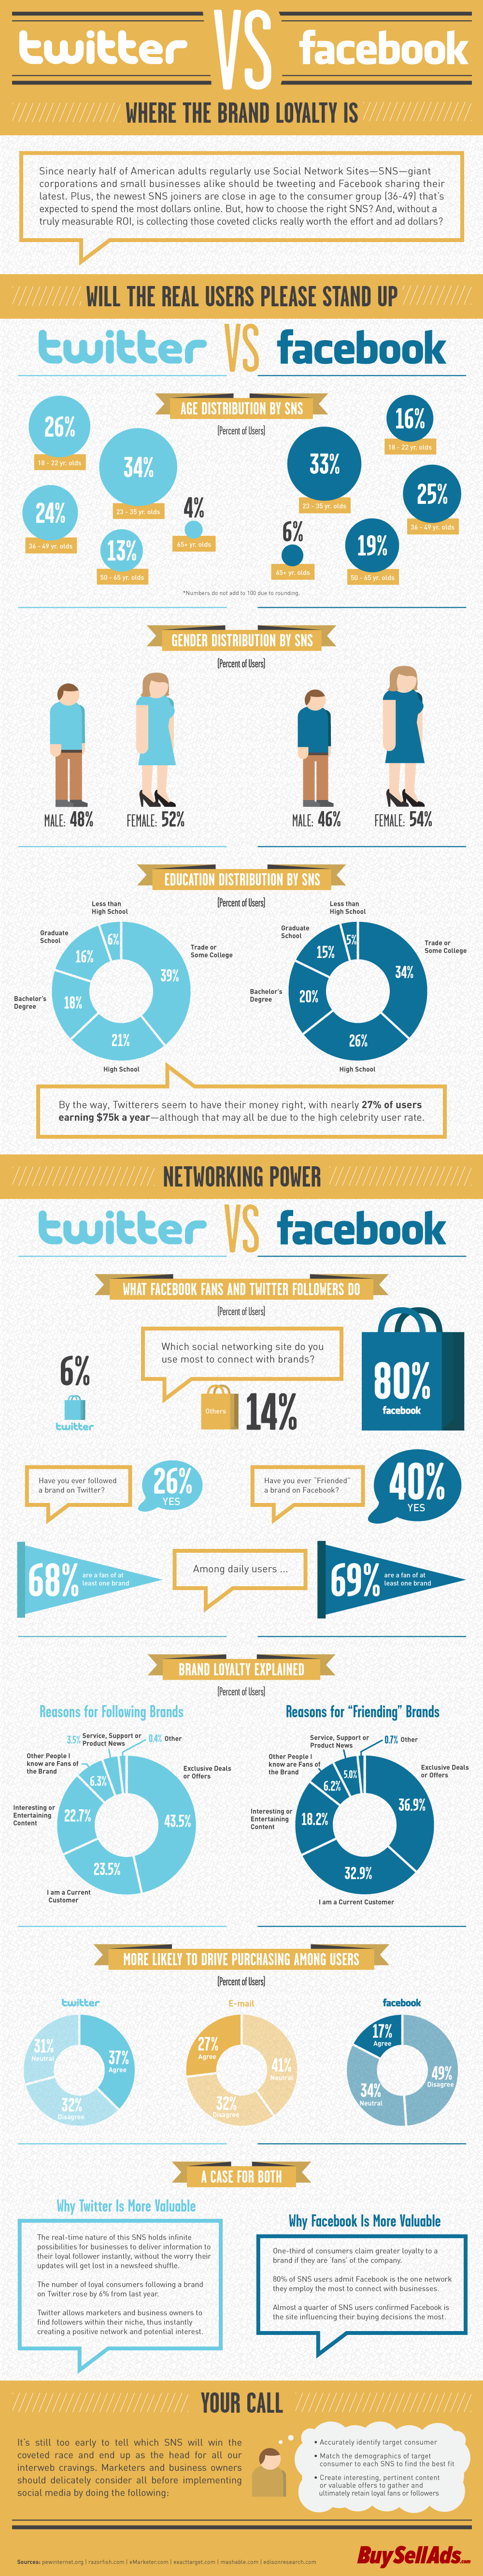 11.07.28_buysellads_twittervs.facebook_v3 Twitter vs. Facebook: Which is Better for Business?